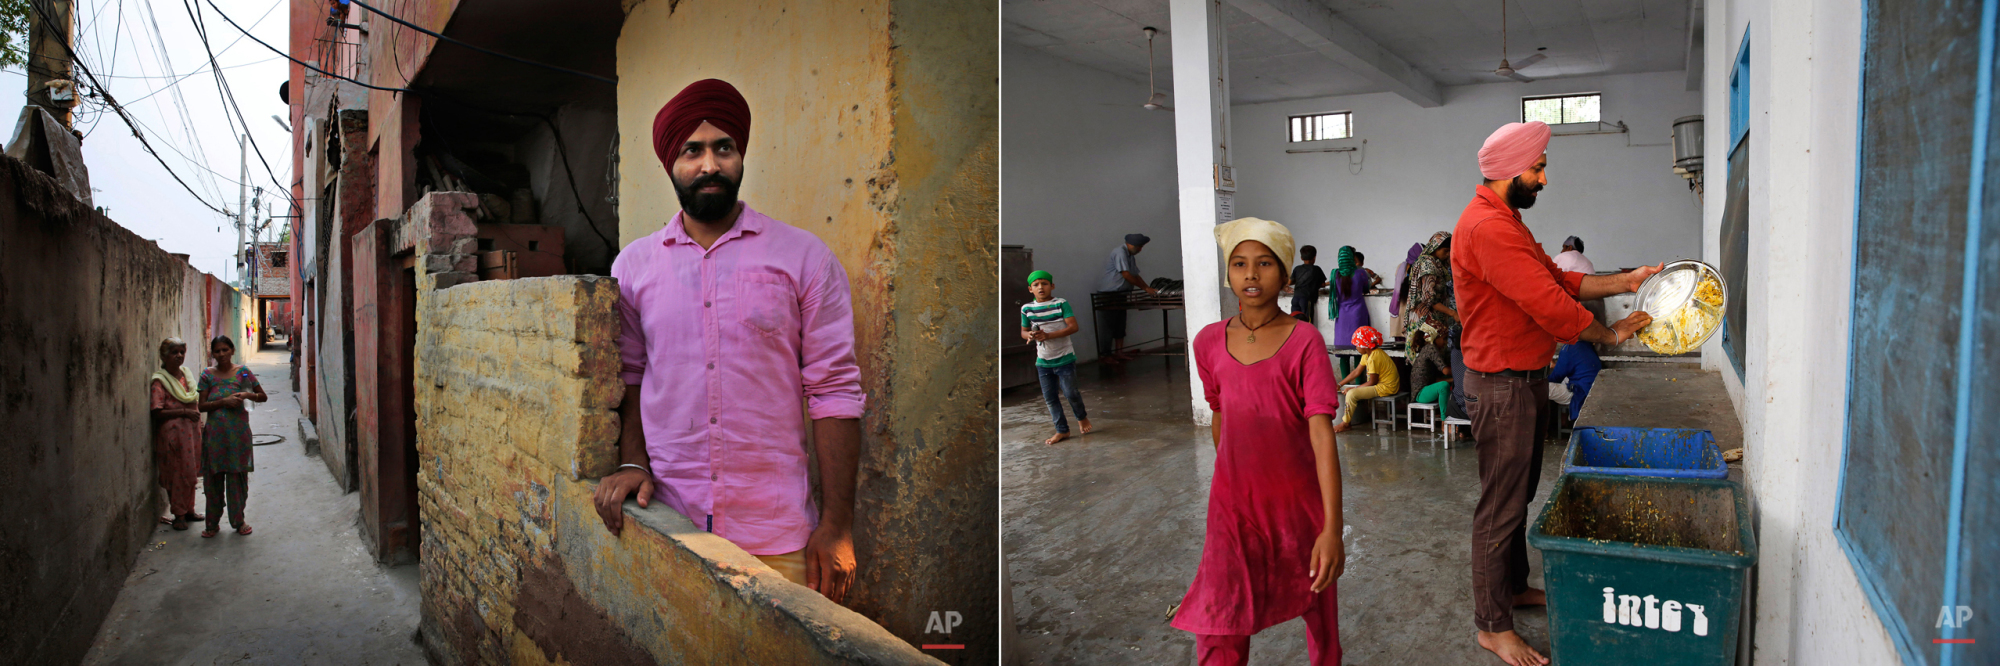 This two picture combo shows on left, Goldy who drives ambulance for Delhi government poses outside his house, in New Delhi, India, on June 15, 2015, as on right, he cleans the used plates during langar at the Majnu-Ka-Tilla Gurdwara or Sikh temple, in New Delhi, India, on June 14, 2015. The langar, which translates to community meal, started by Guru Nanak, founder of Sikhism in late 15th century, a place where people from different cast and creed come under one roof to eat and serve. It is now a tradition followed by more than 30 million Sikhs worldwide. Nearly every Gurdwara in the world, irrespective of size, has a kitchen and serves lanagar. (AP Photo/Manish Swarup)